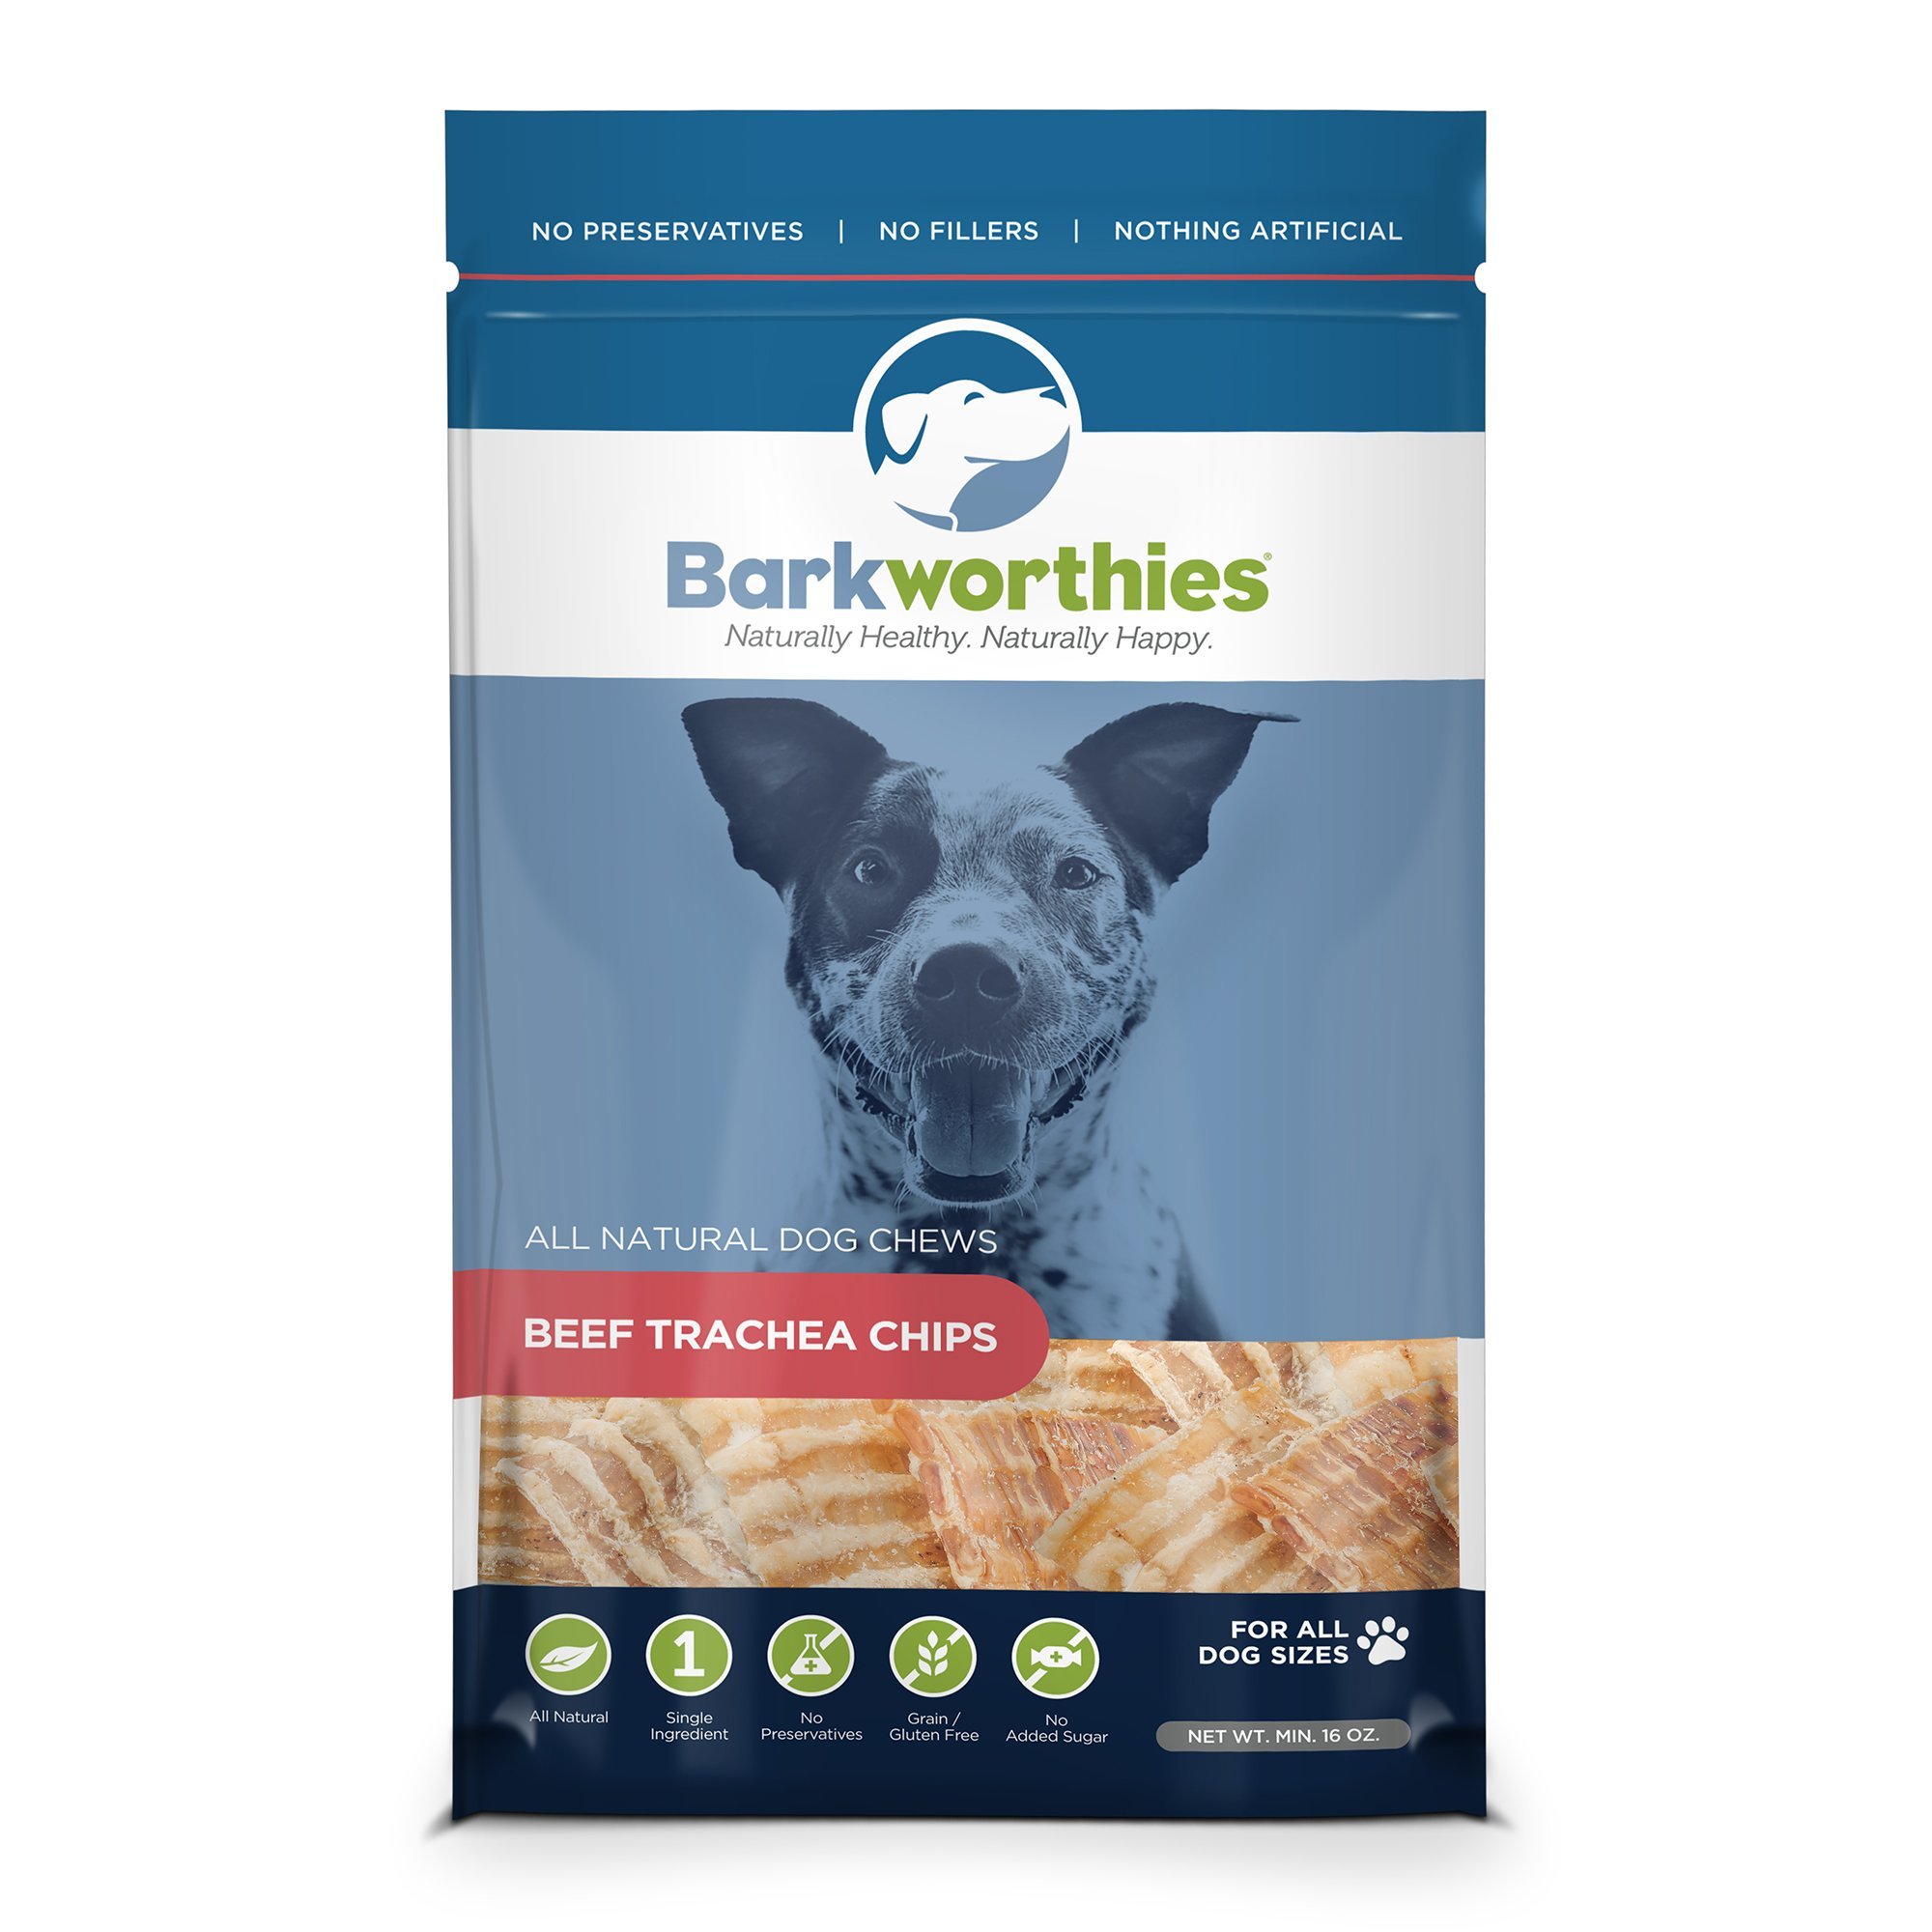 Barkworthies Trachea Chips In Bag For Pets, 1-Pound by Barkworthies